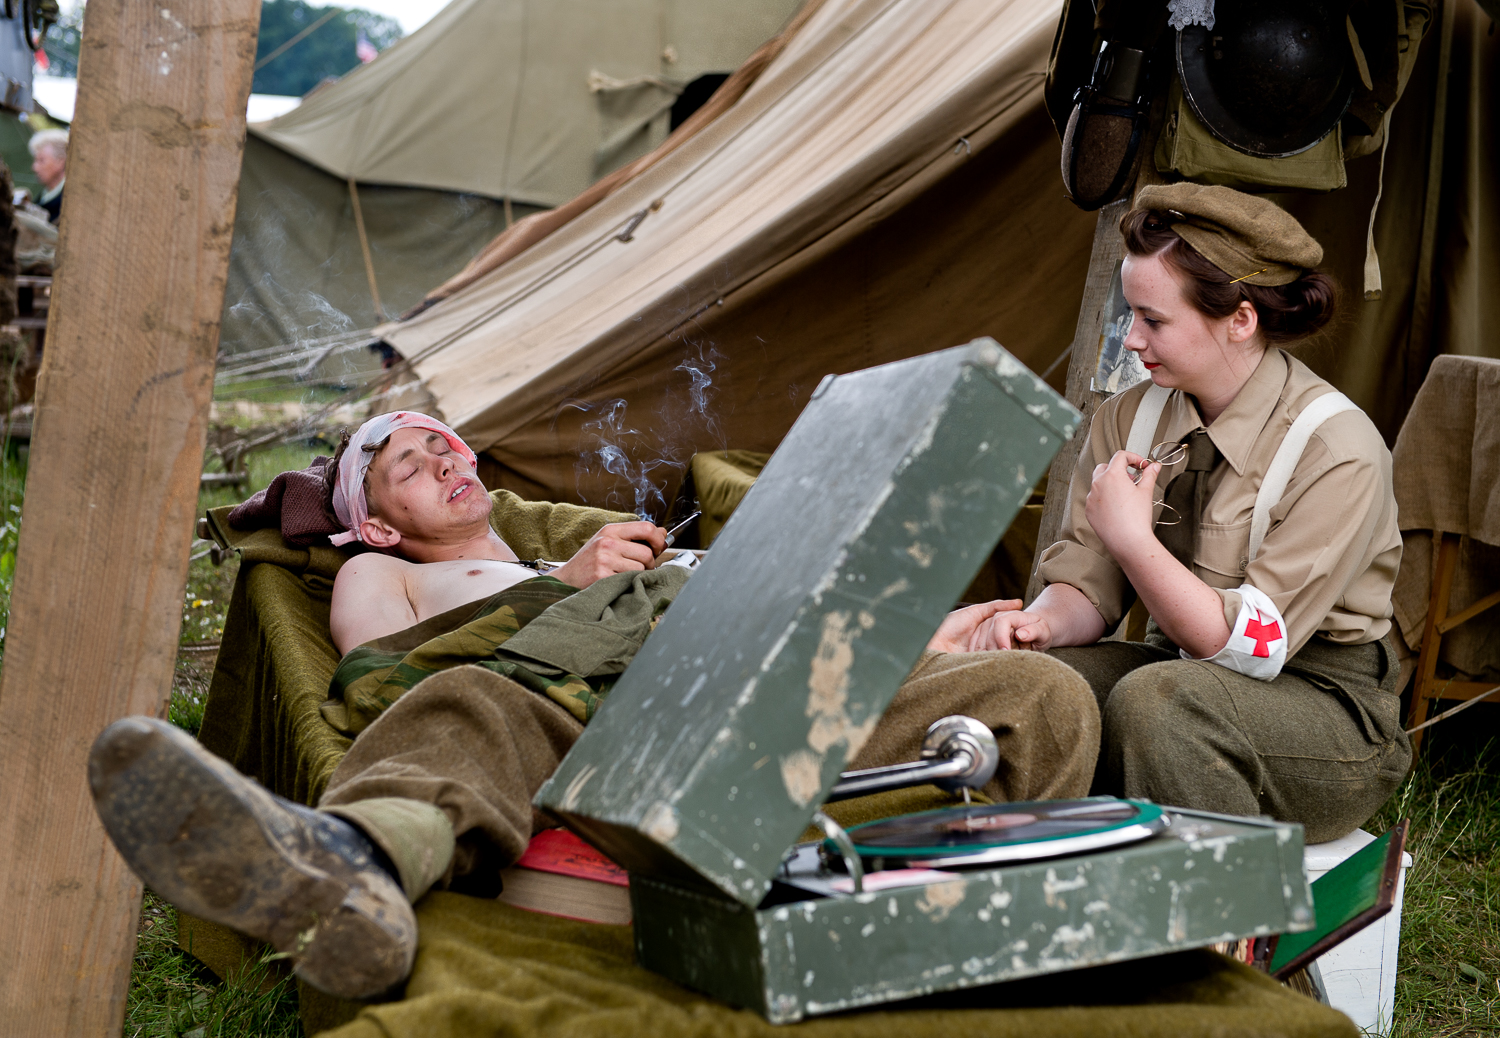 Nurse comforting injured soldier [re-enactors], War and Peace show, Kent